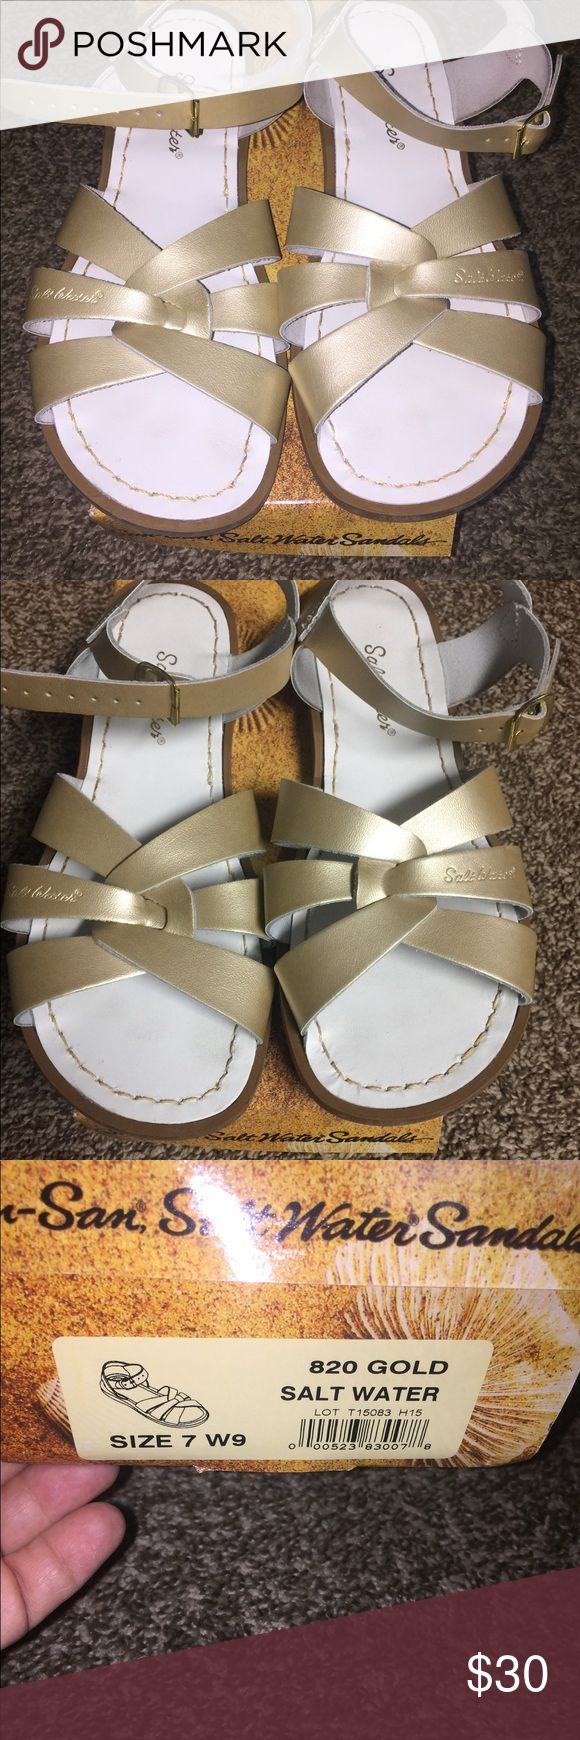 Salt Water Sandals I wore these once at Disneyland. I wear a size 8 in woman but in these sandals I was the size shown on the box. Salt Water Sandals by Hoy Shoes Sandals